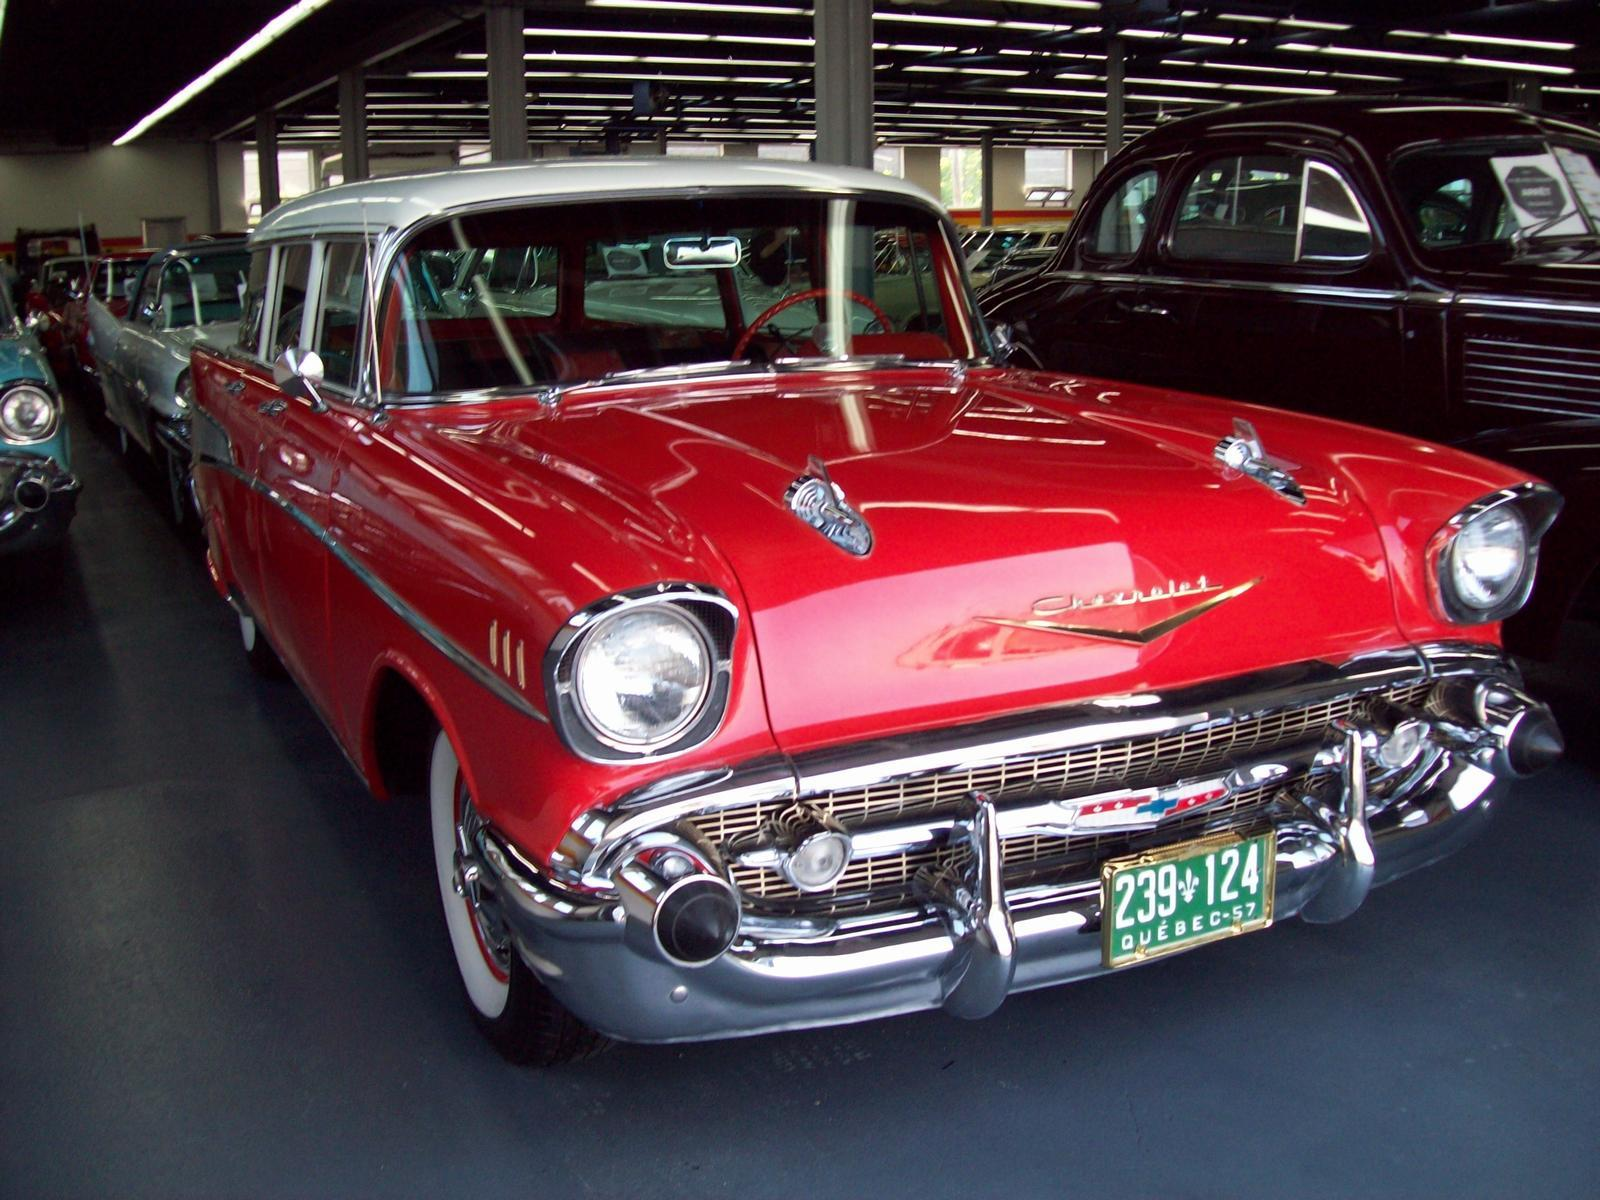 Used 1957 chevrolet belair wagon for sale in saint l onard john scotti classic cars h1r 2y7 2070727